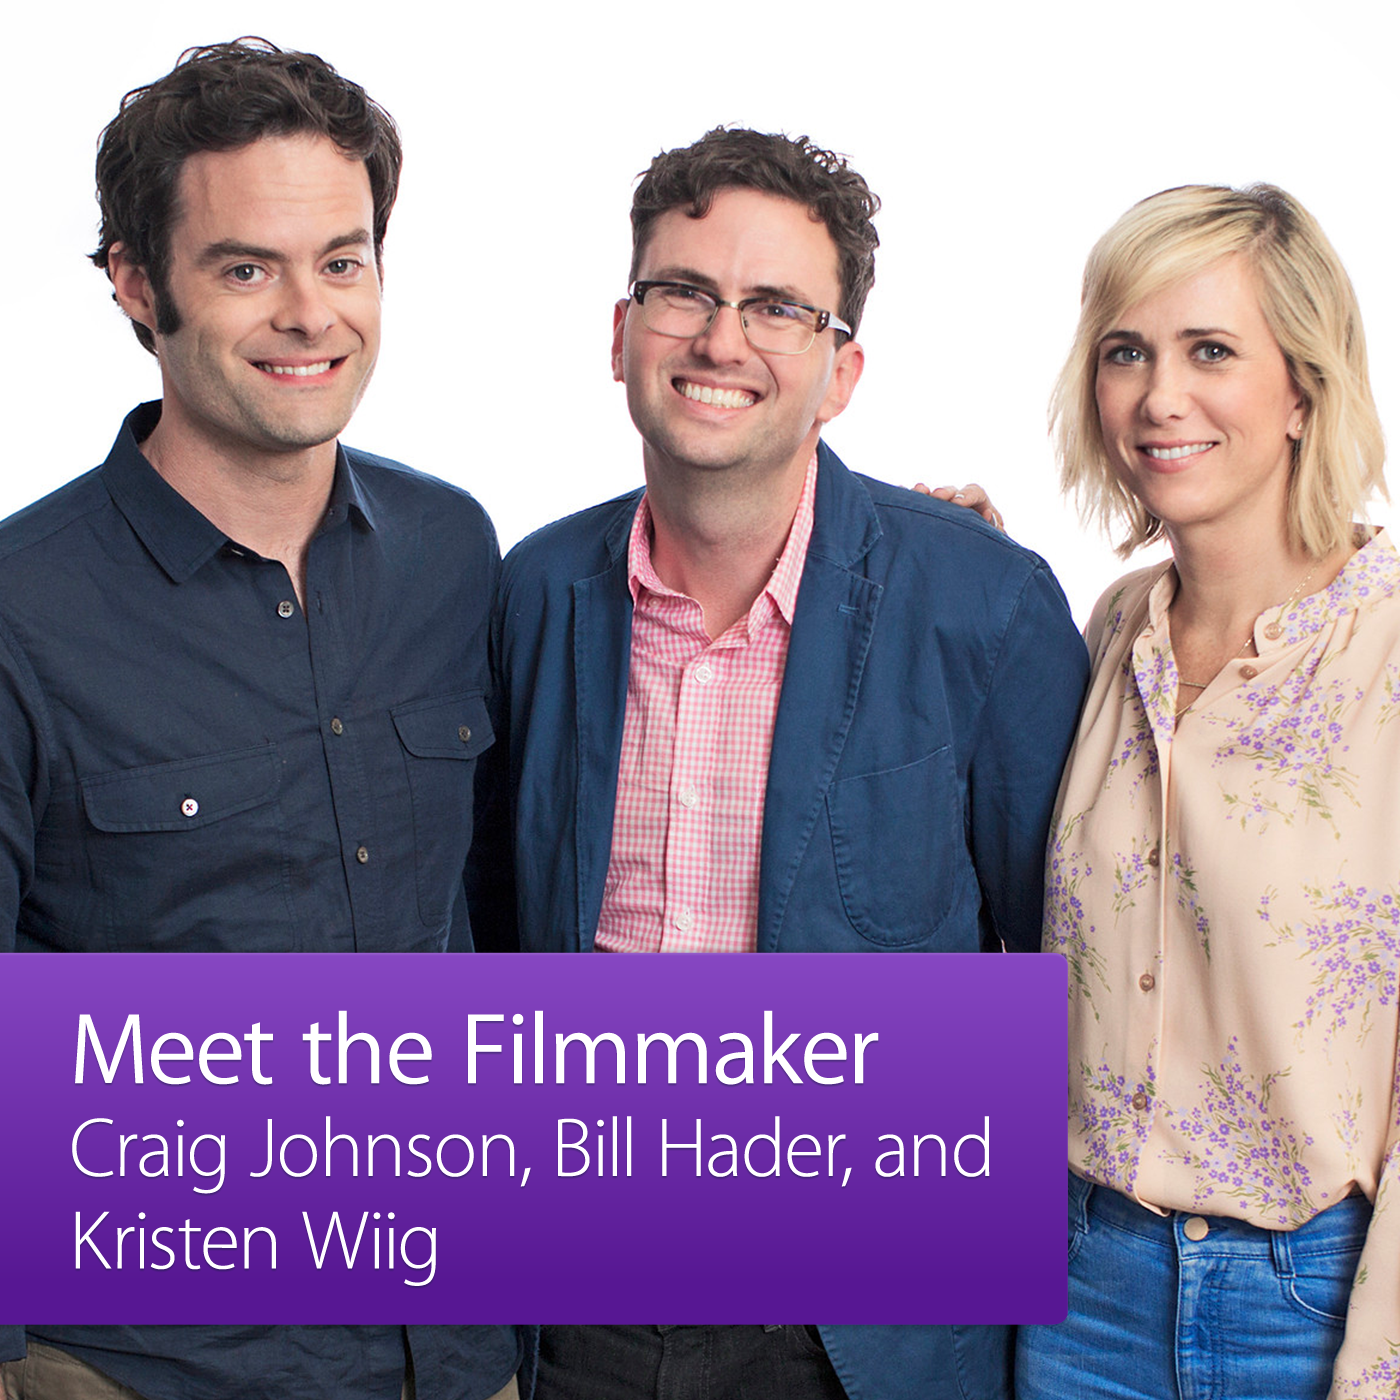 Craig Johnson, Bill Hader, and Kristen Wiig: Meet the Filmmaker